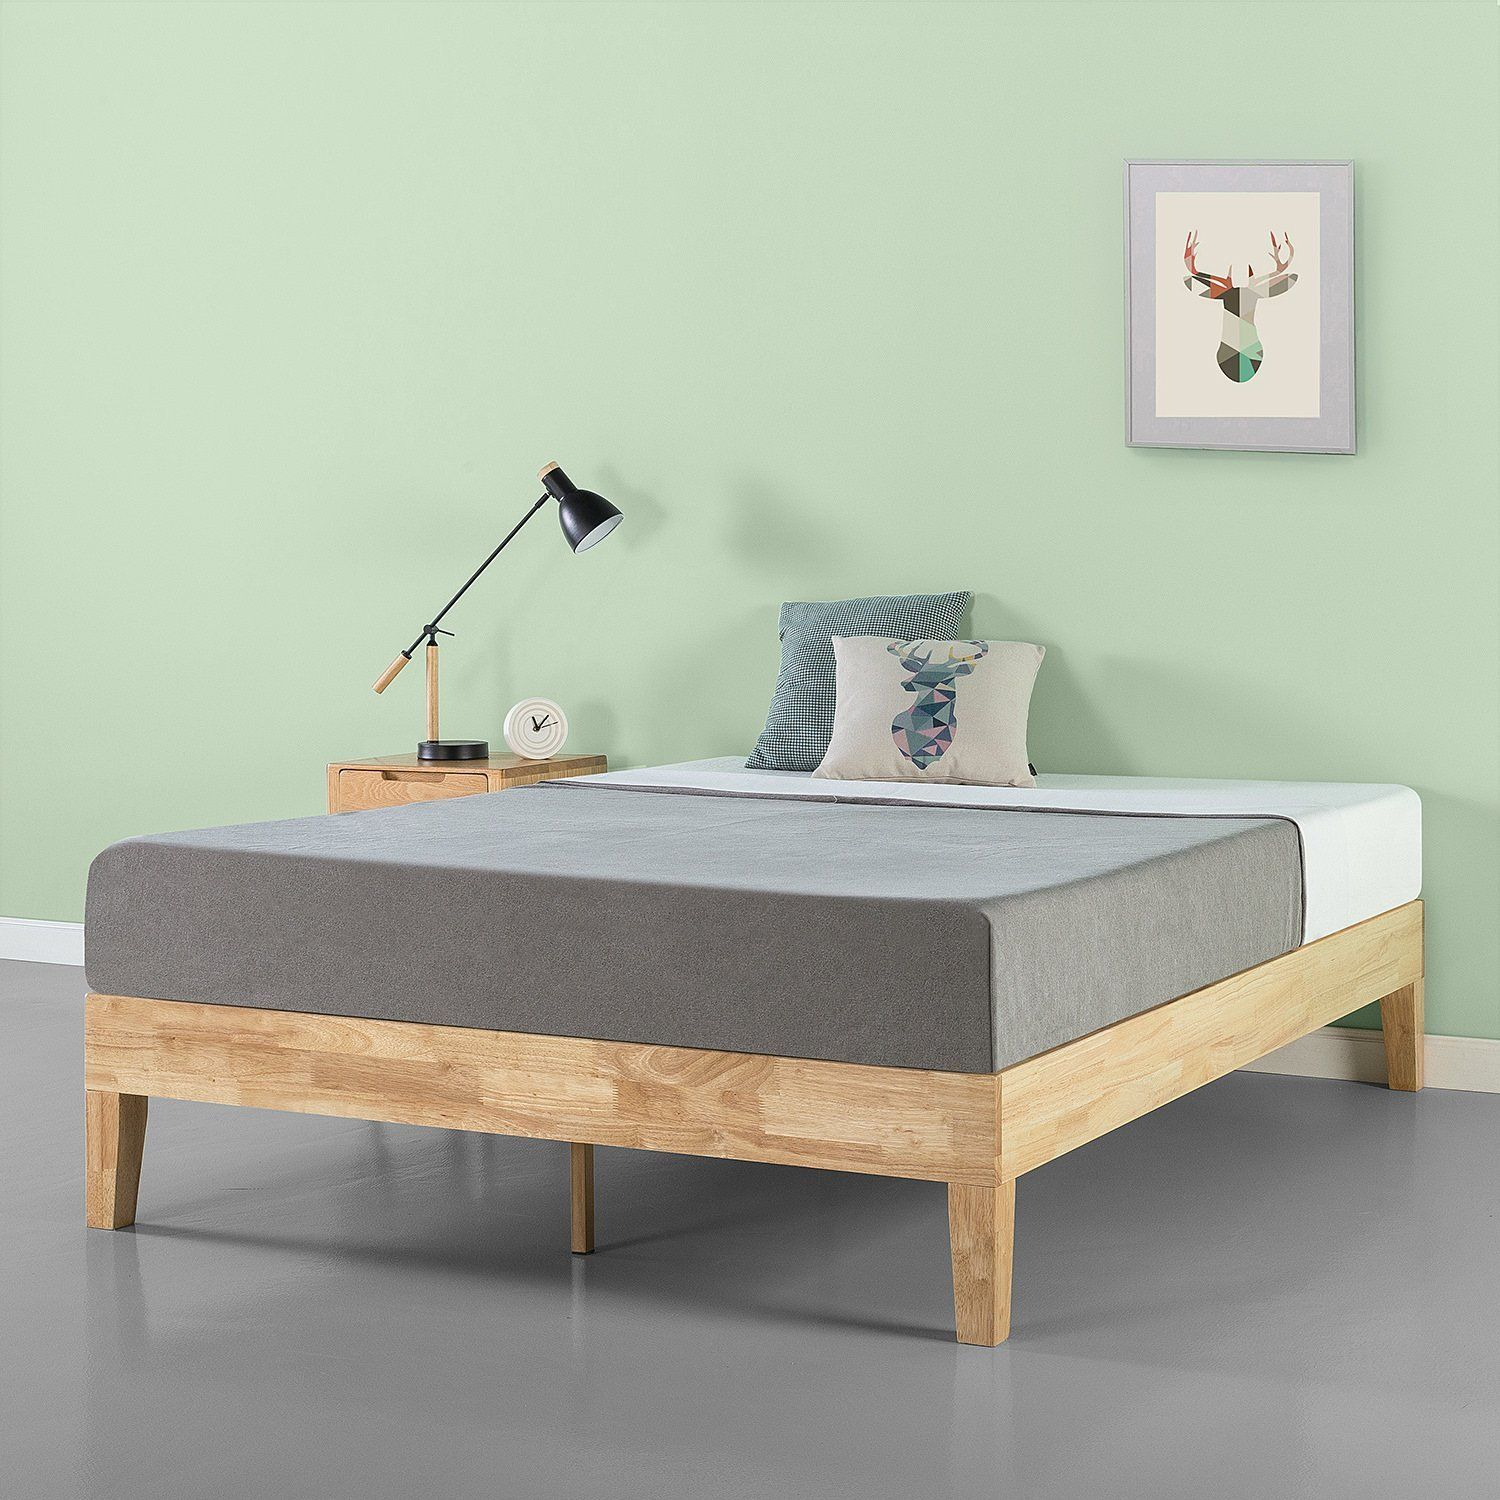 189 Amazon Queen Bed Frame No Headboard Solid Wood Platform